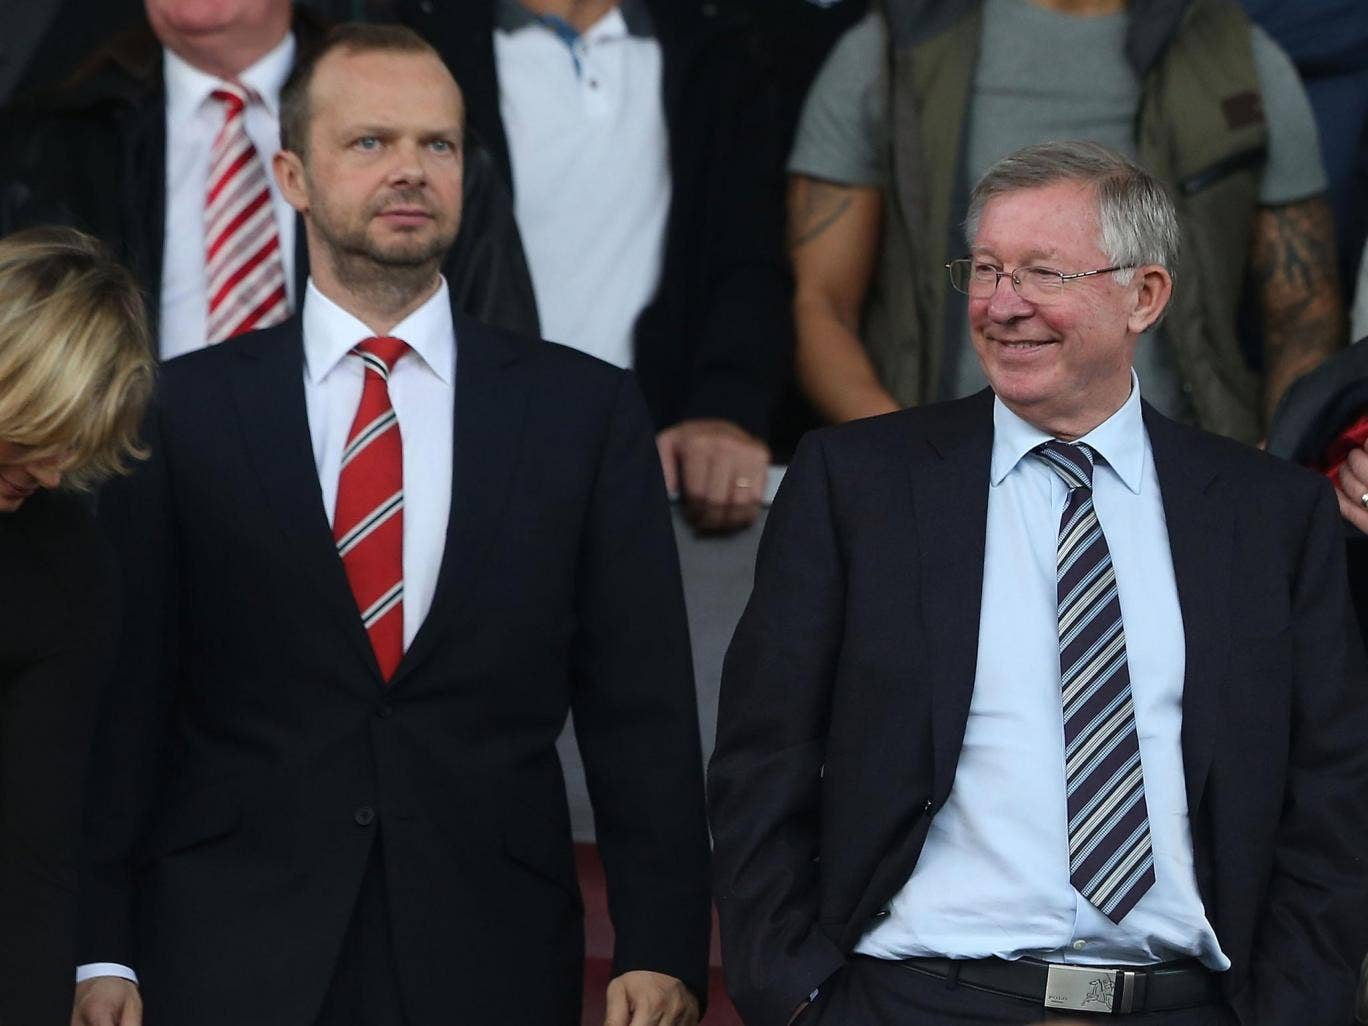 Manchester United chief executive Ed Woodward and former manager Sir Alex Ferguson